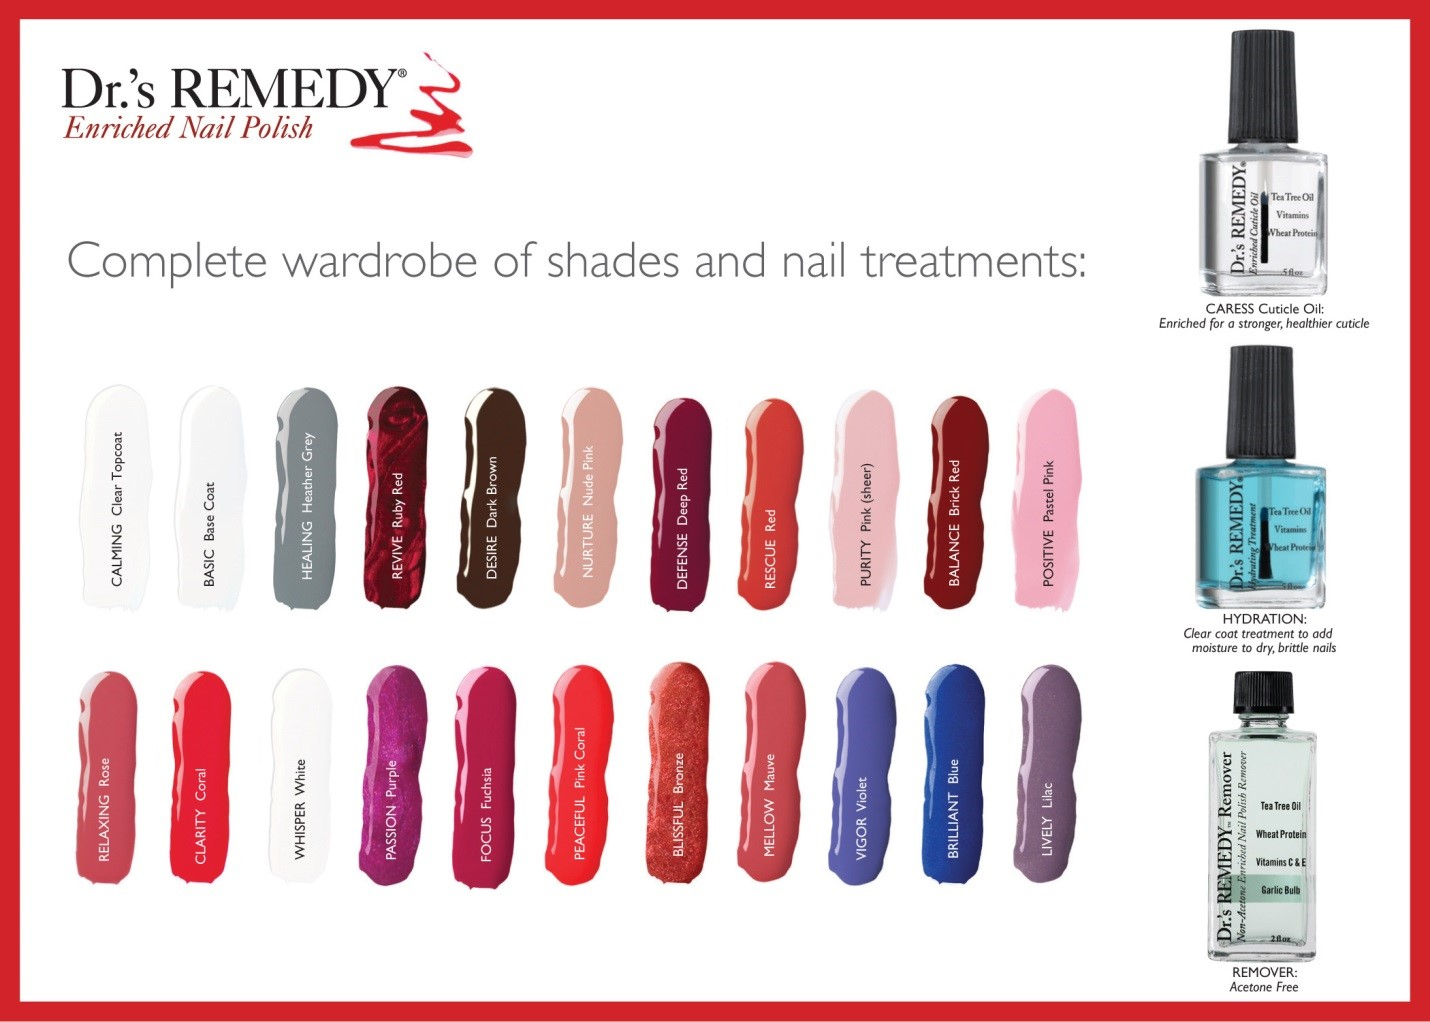 Dr.'s REMEDY®  is a line of   podiatrist formulated   nail care created by board certified podiatrists, Dr. Adam Cirlincione and Dr. William Spielfogel. Our collection of products includes over thirty luxurious nail colors and as well as nail care solutions, which can minimize the appearance of dry brittle nails, hydrate nail cuticles and improve the wear-time of your nail color.